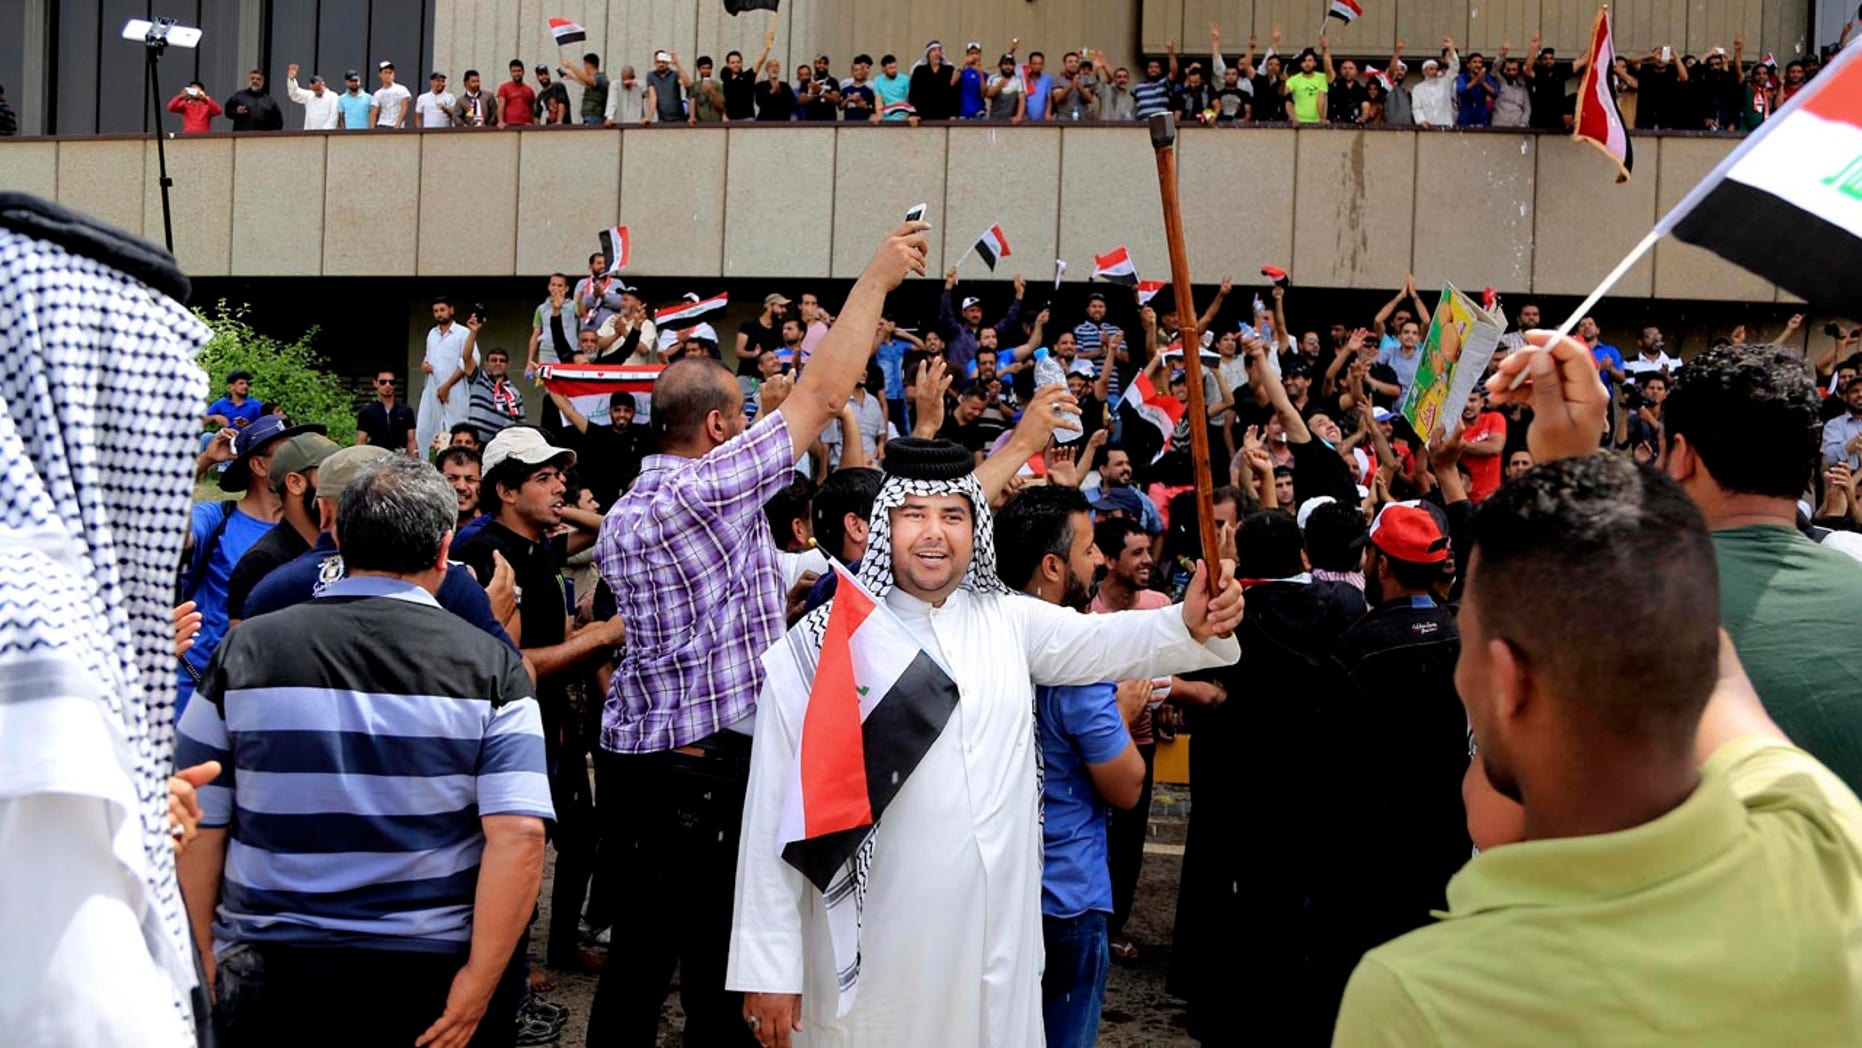 Supporters of Shiite cleric Muqtada al-Sadr chant slogans calling for governmental reforms as they wave national flags before ending their sit-in inside Baghdad's highly fortified Green Zone Sunday.